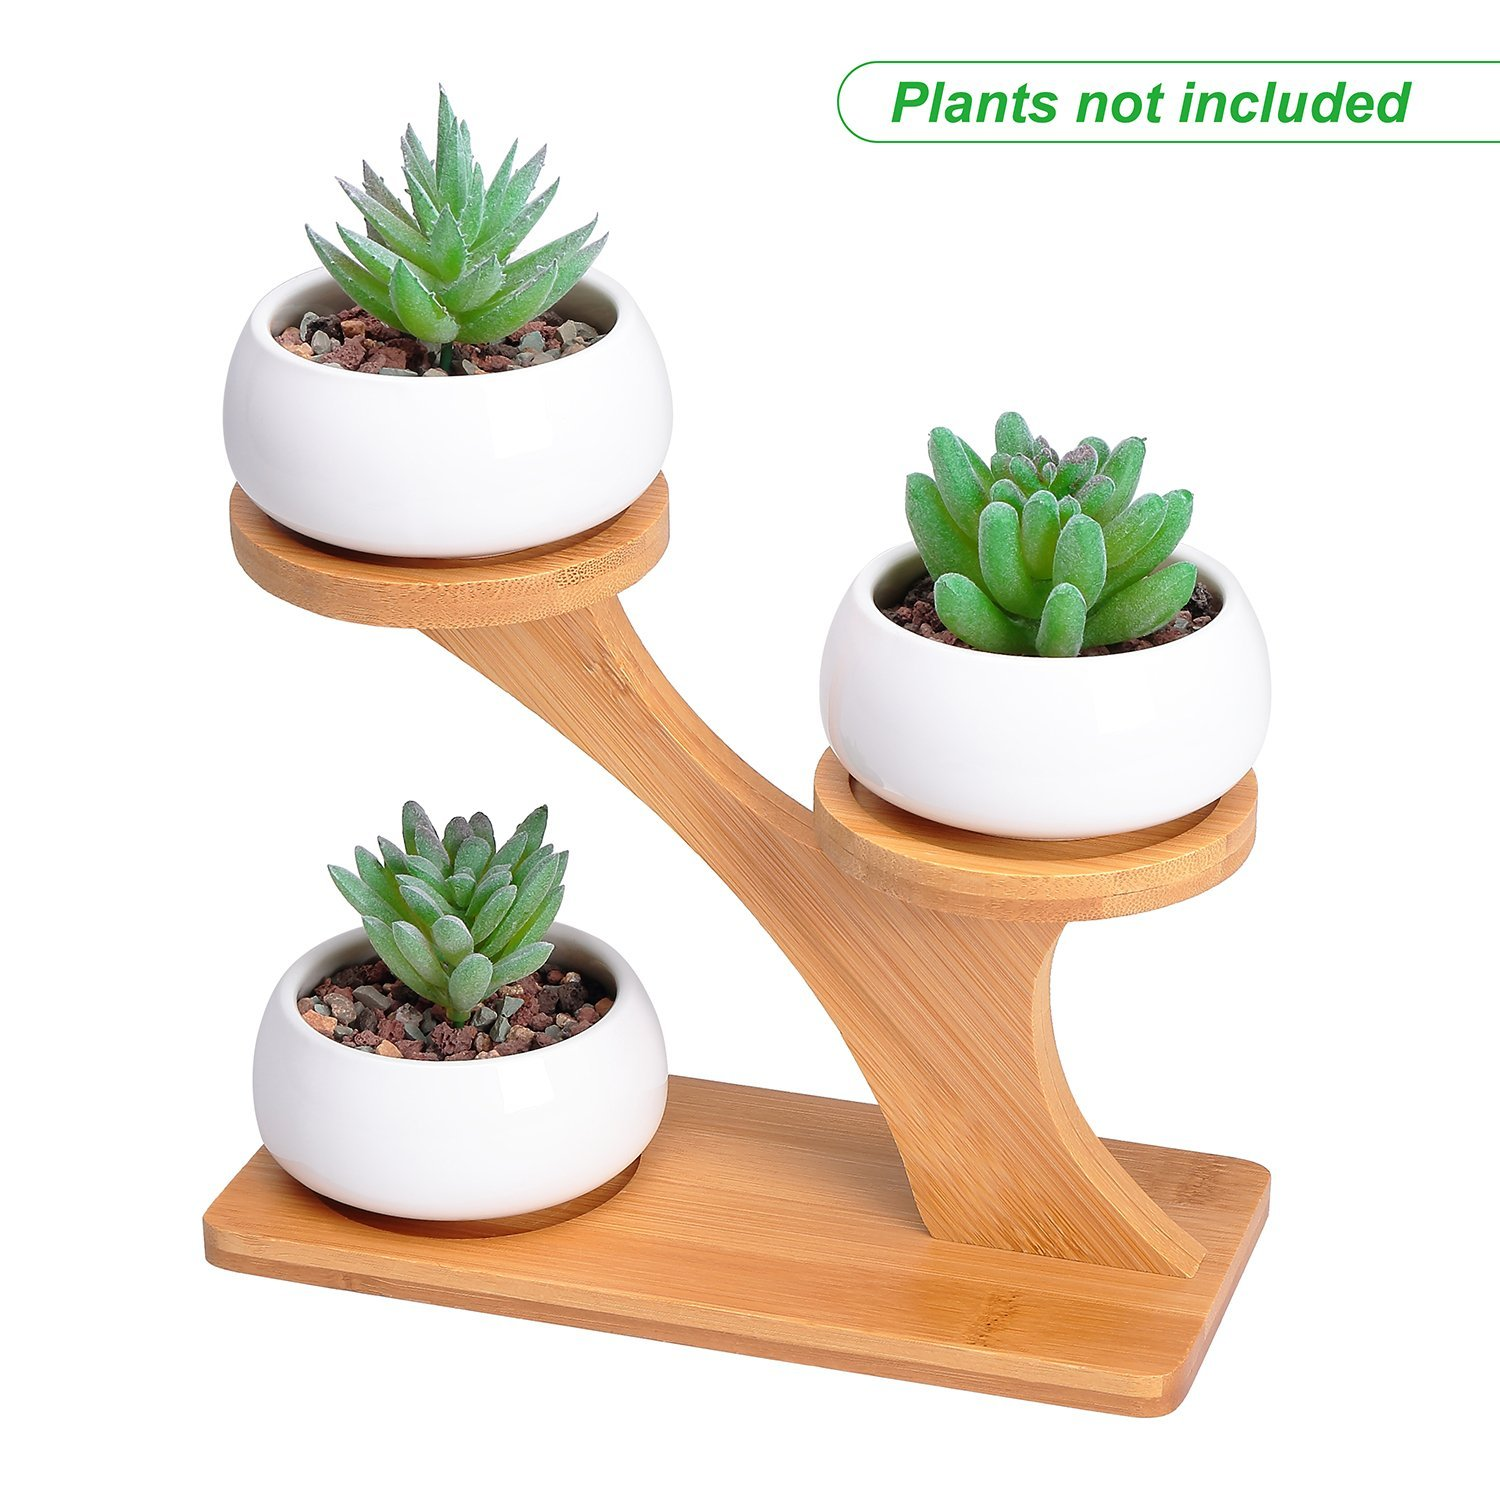 Succulent Pots with 3 Tier Bamboo Saucers Stand Holder - Modern Decorative Ceramic Flower Planter Plant Pot with Drainage - Home Office Desk Garden Mini Cactus Pot Indoor Decoration by Refetone